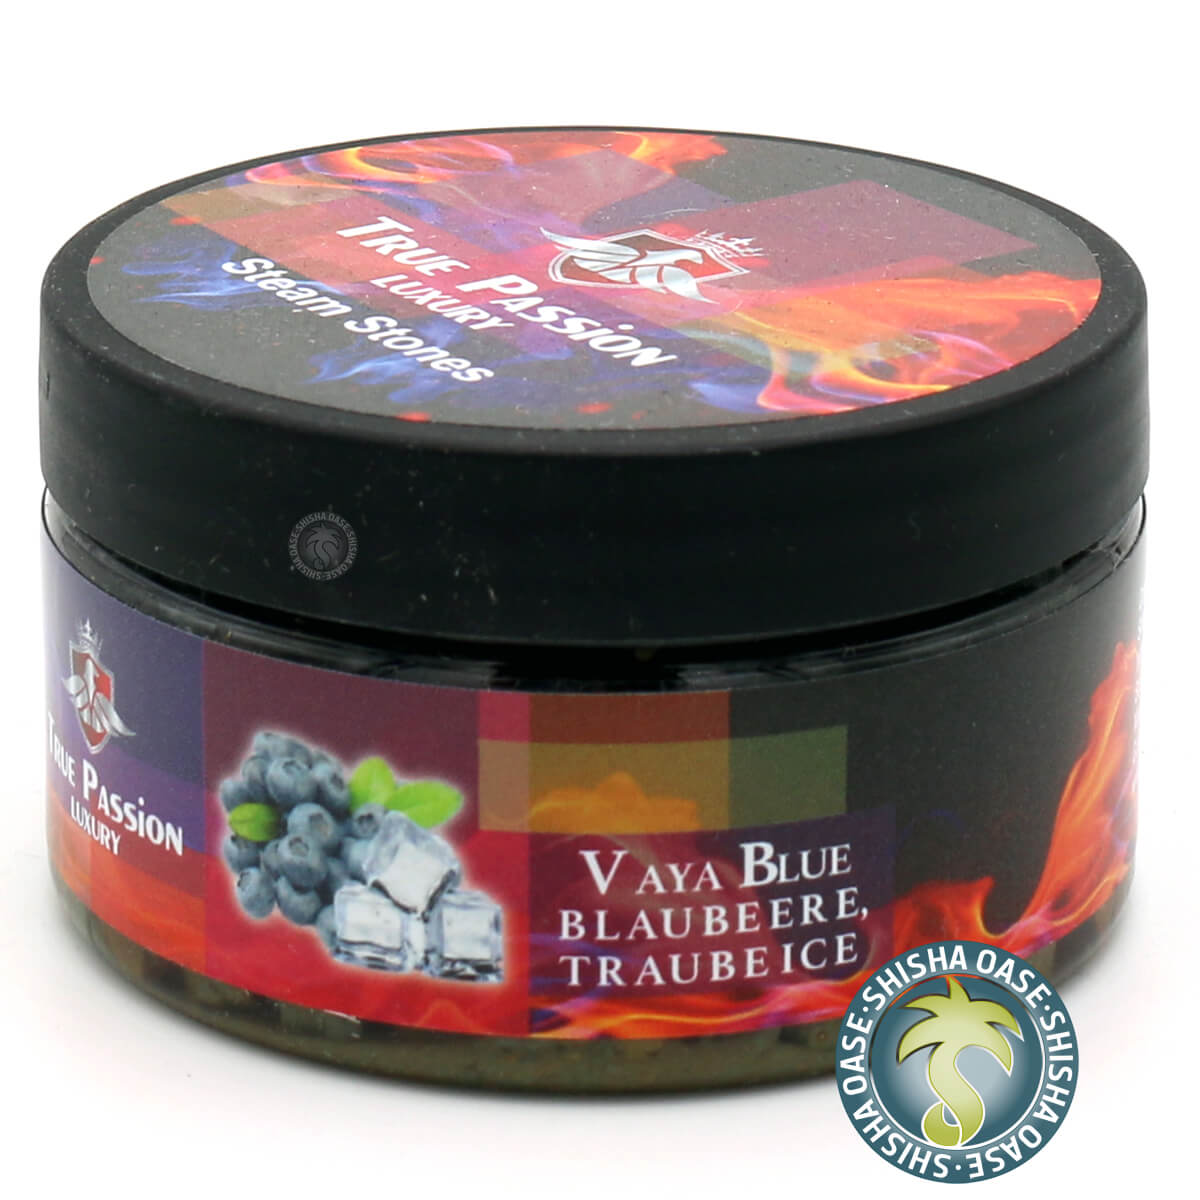 True Passion Dampfsteine 120g | Vaya Blue